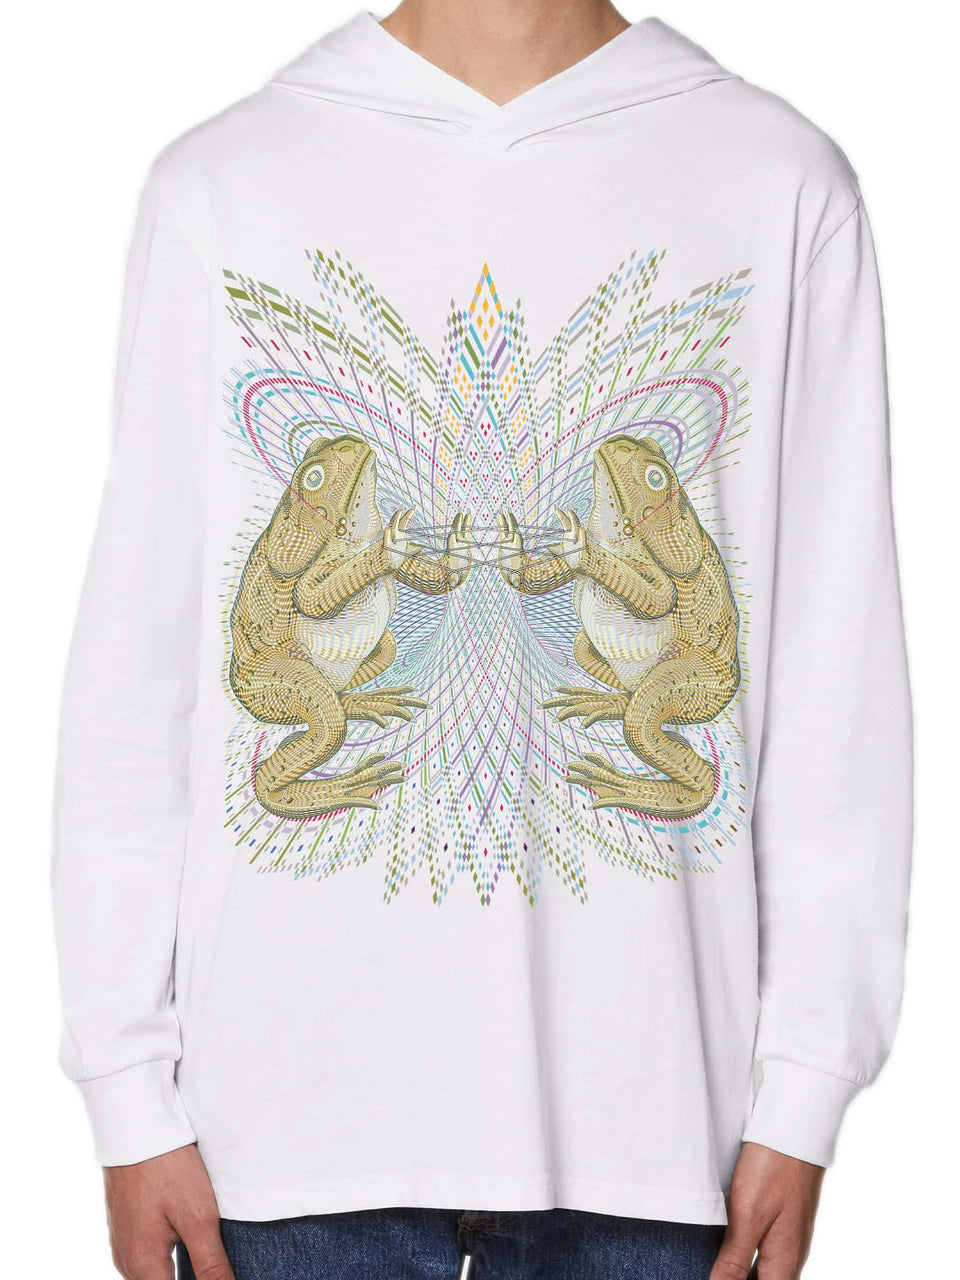 Bufo Alvarius Made To Order Men Hoddie Long Sleeve T- shirt - White